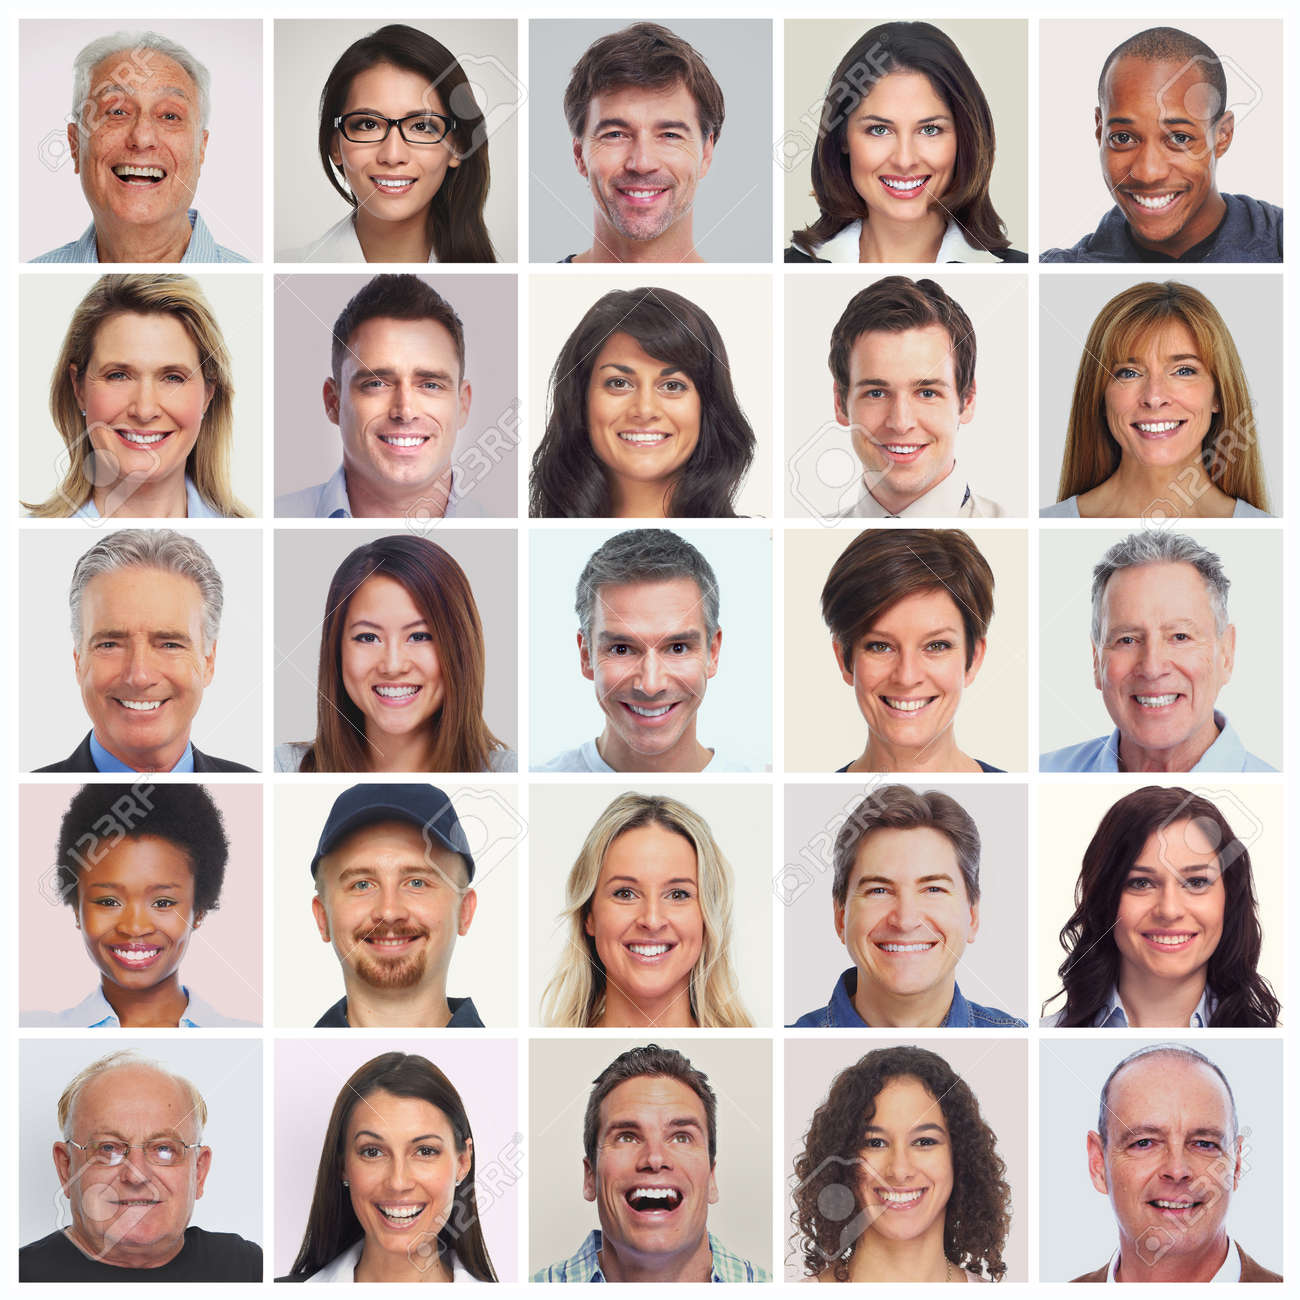 collection of smiling faces set of people men women seniors